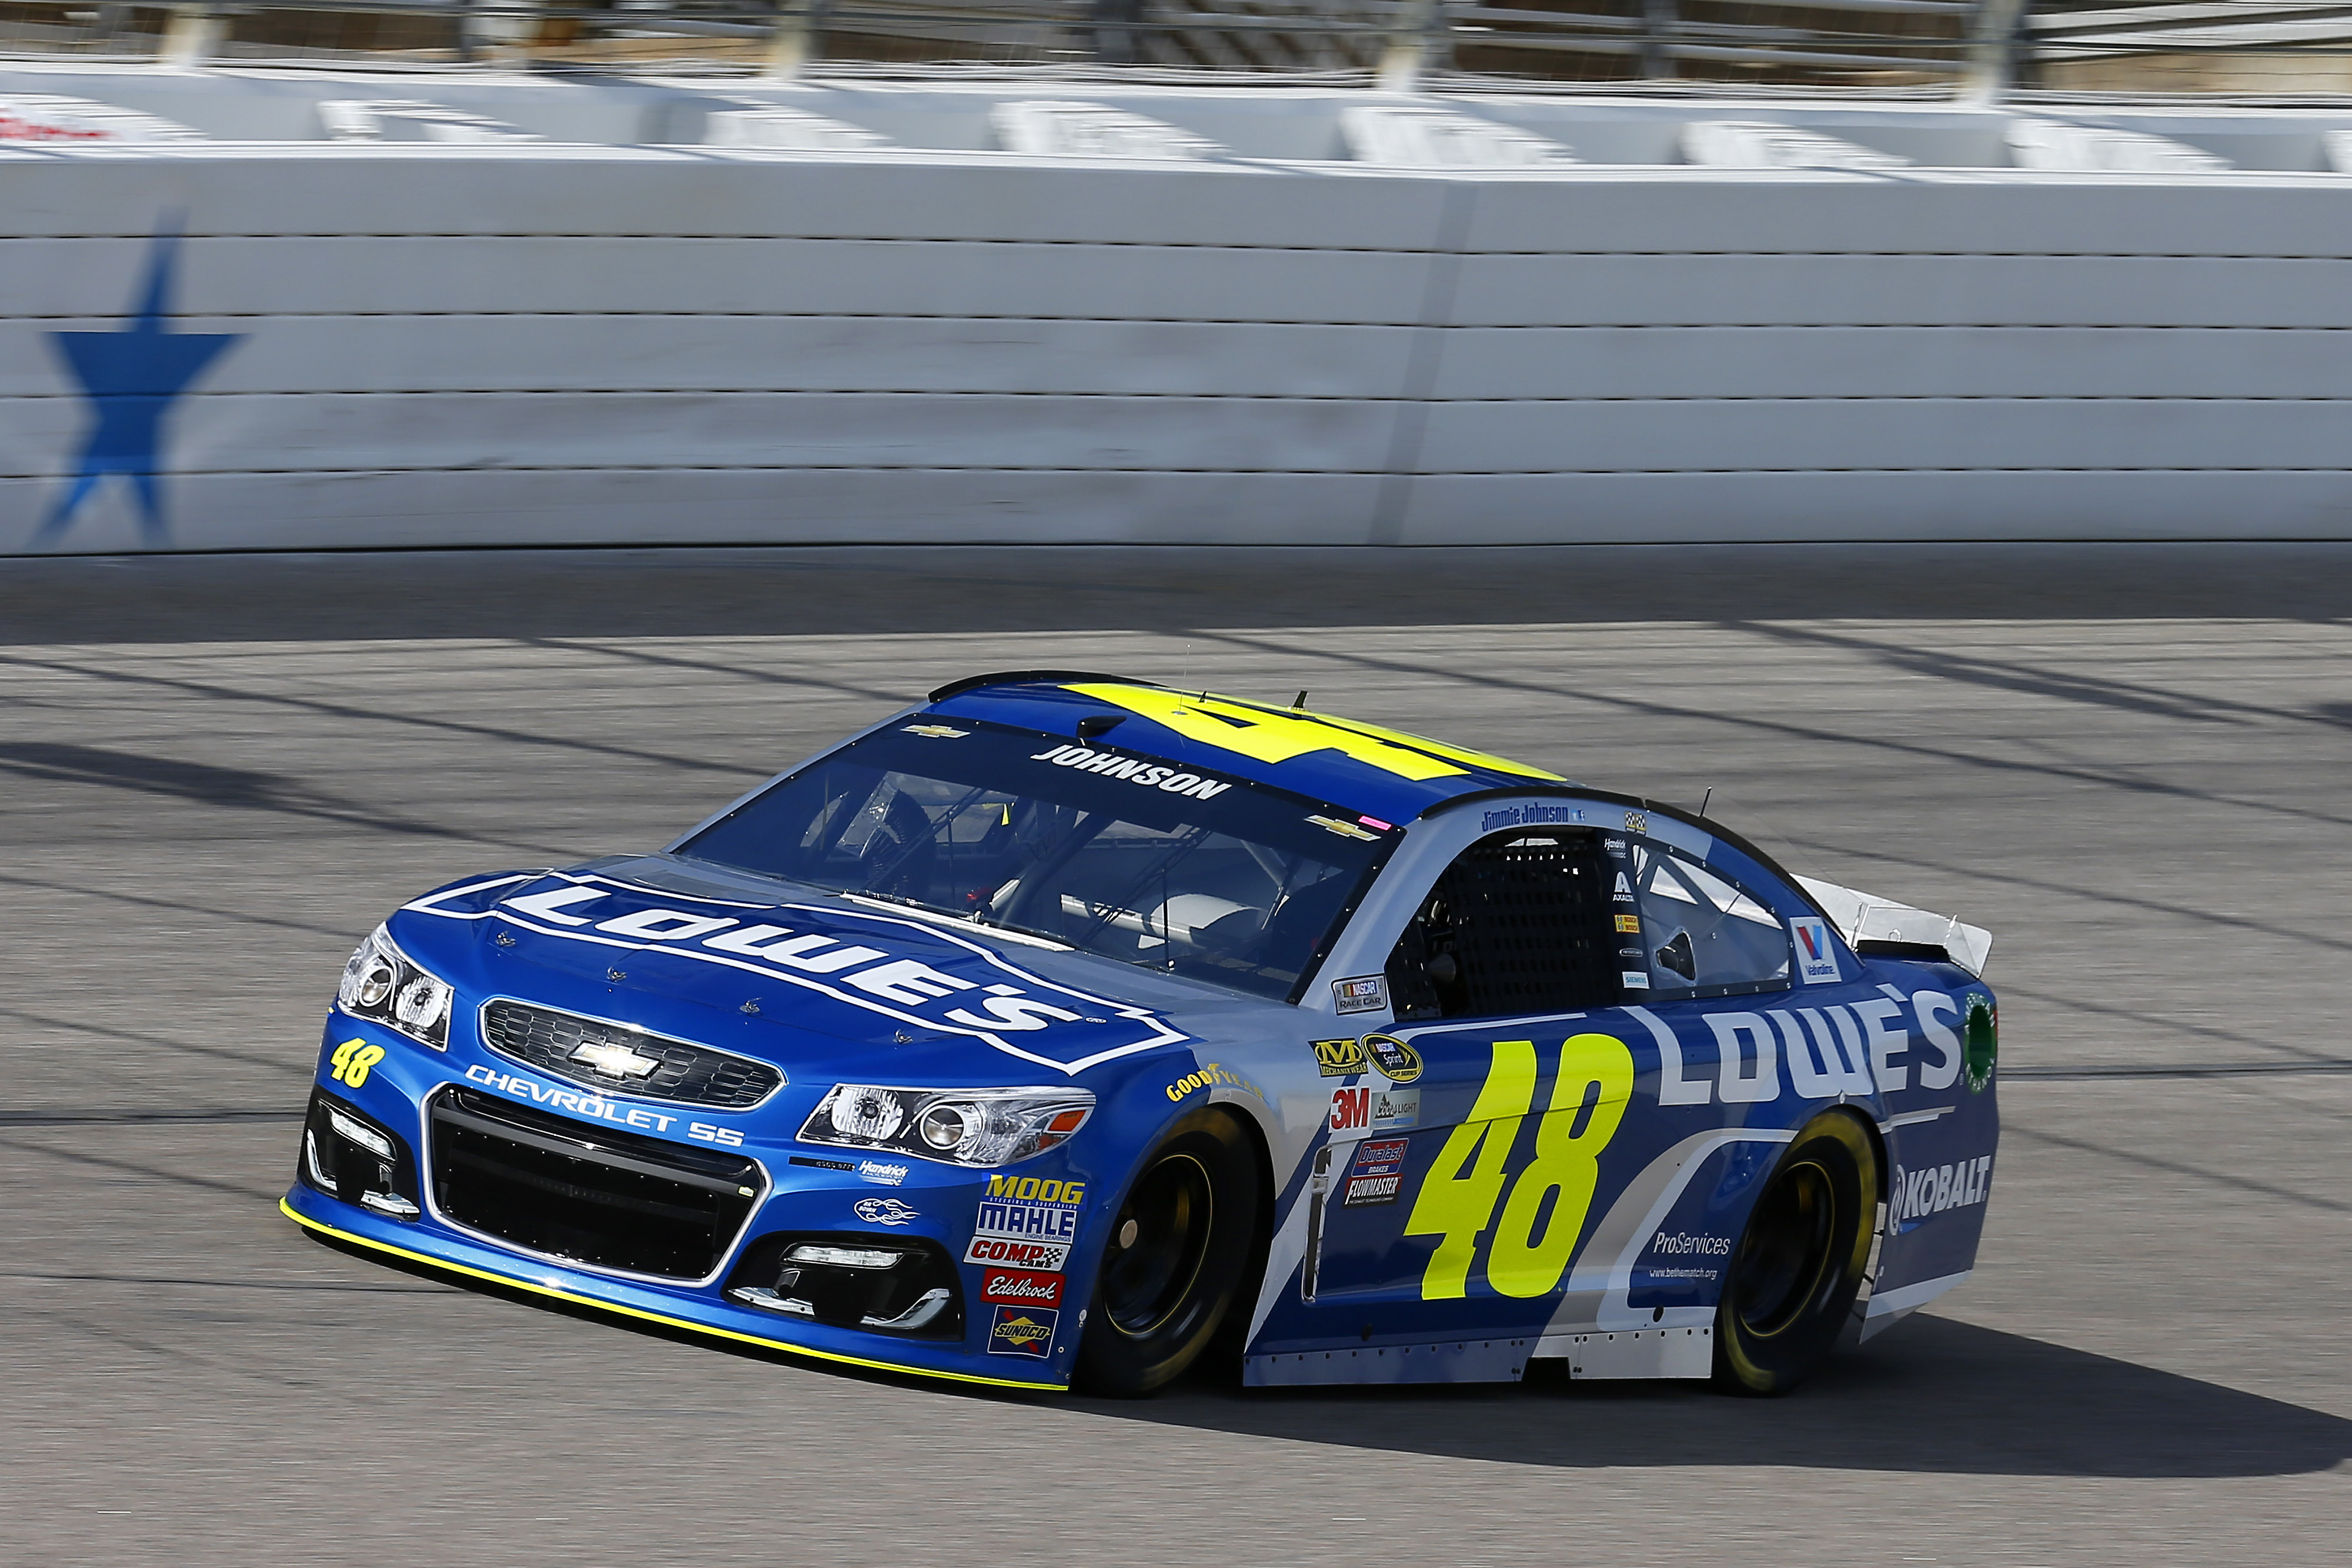 Yellow is Back! | Warehouse | Jimmie Johnson